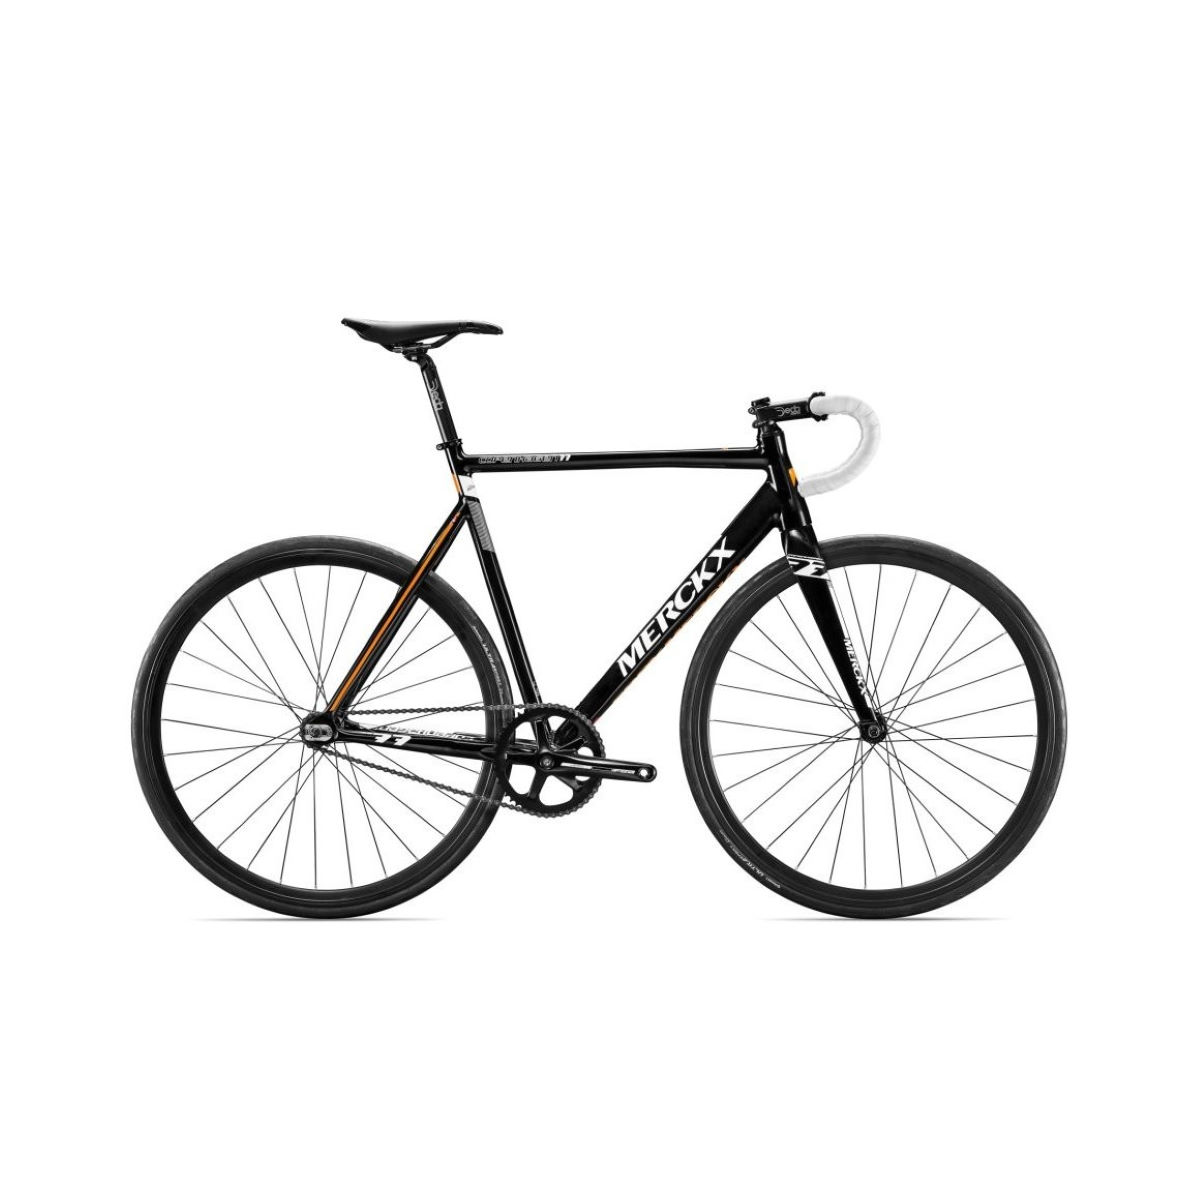 Vélo de piste Eddy Merckx Copenhagen 77 (2017) - XS Stock Bike Black/White/Orange Vélos de piste